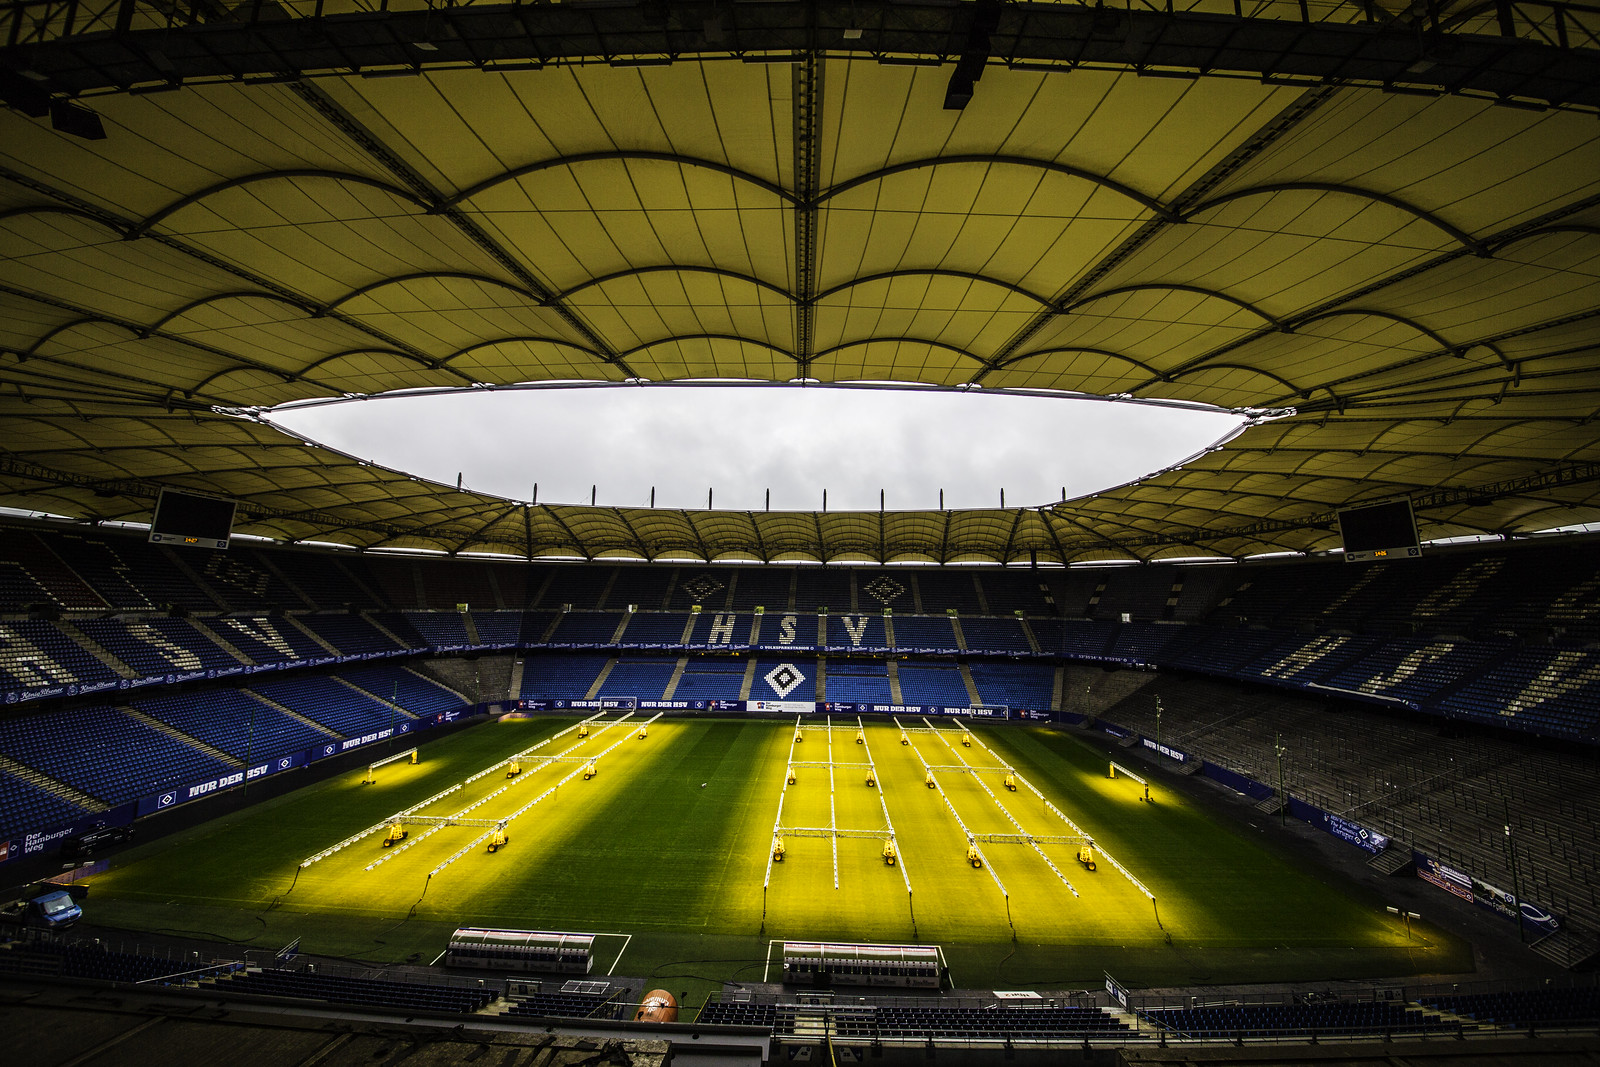 Volksparkstadion, Hamburg, home of HSV, Hamburger SV